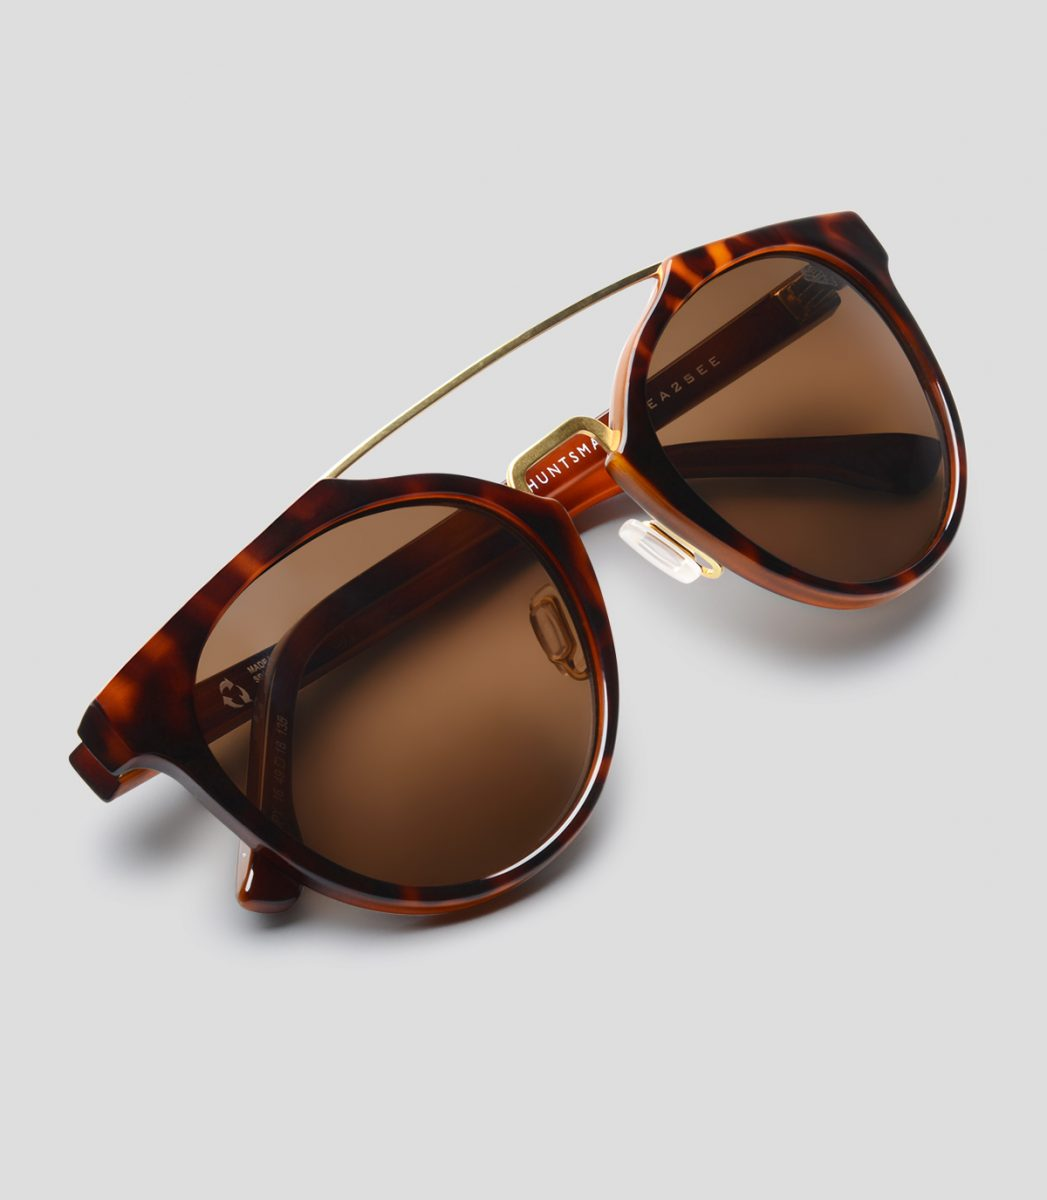 Spy 18 Shiny Brown frames, fume lenses, with gold bridge